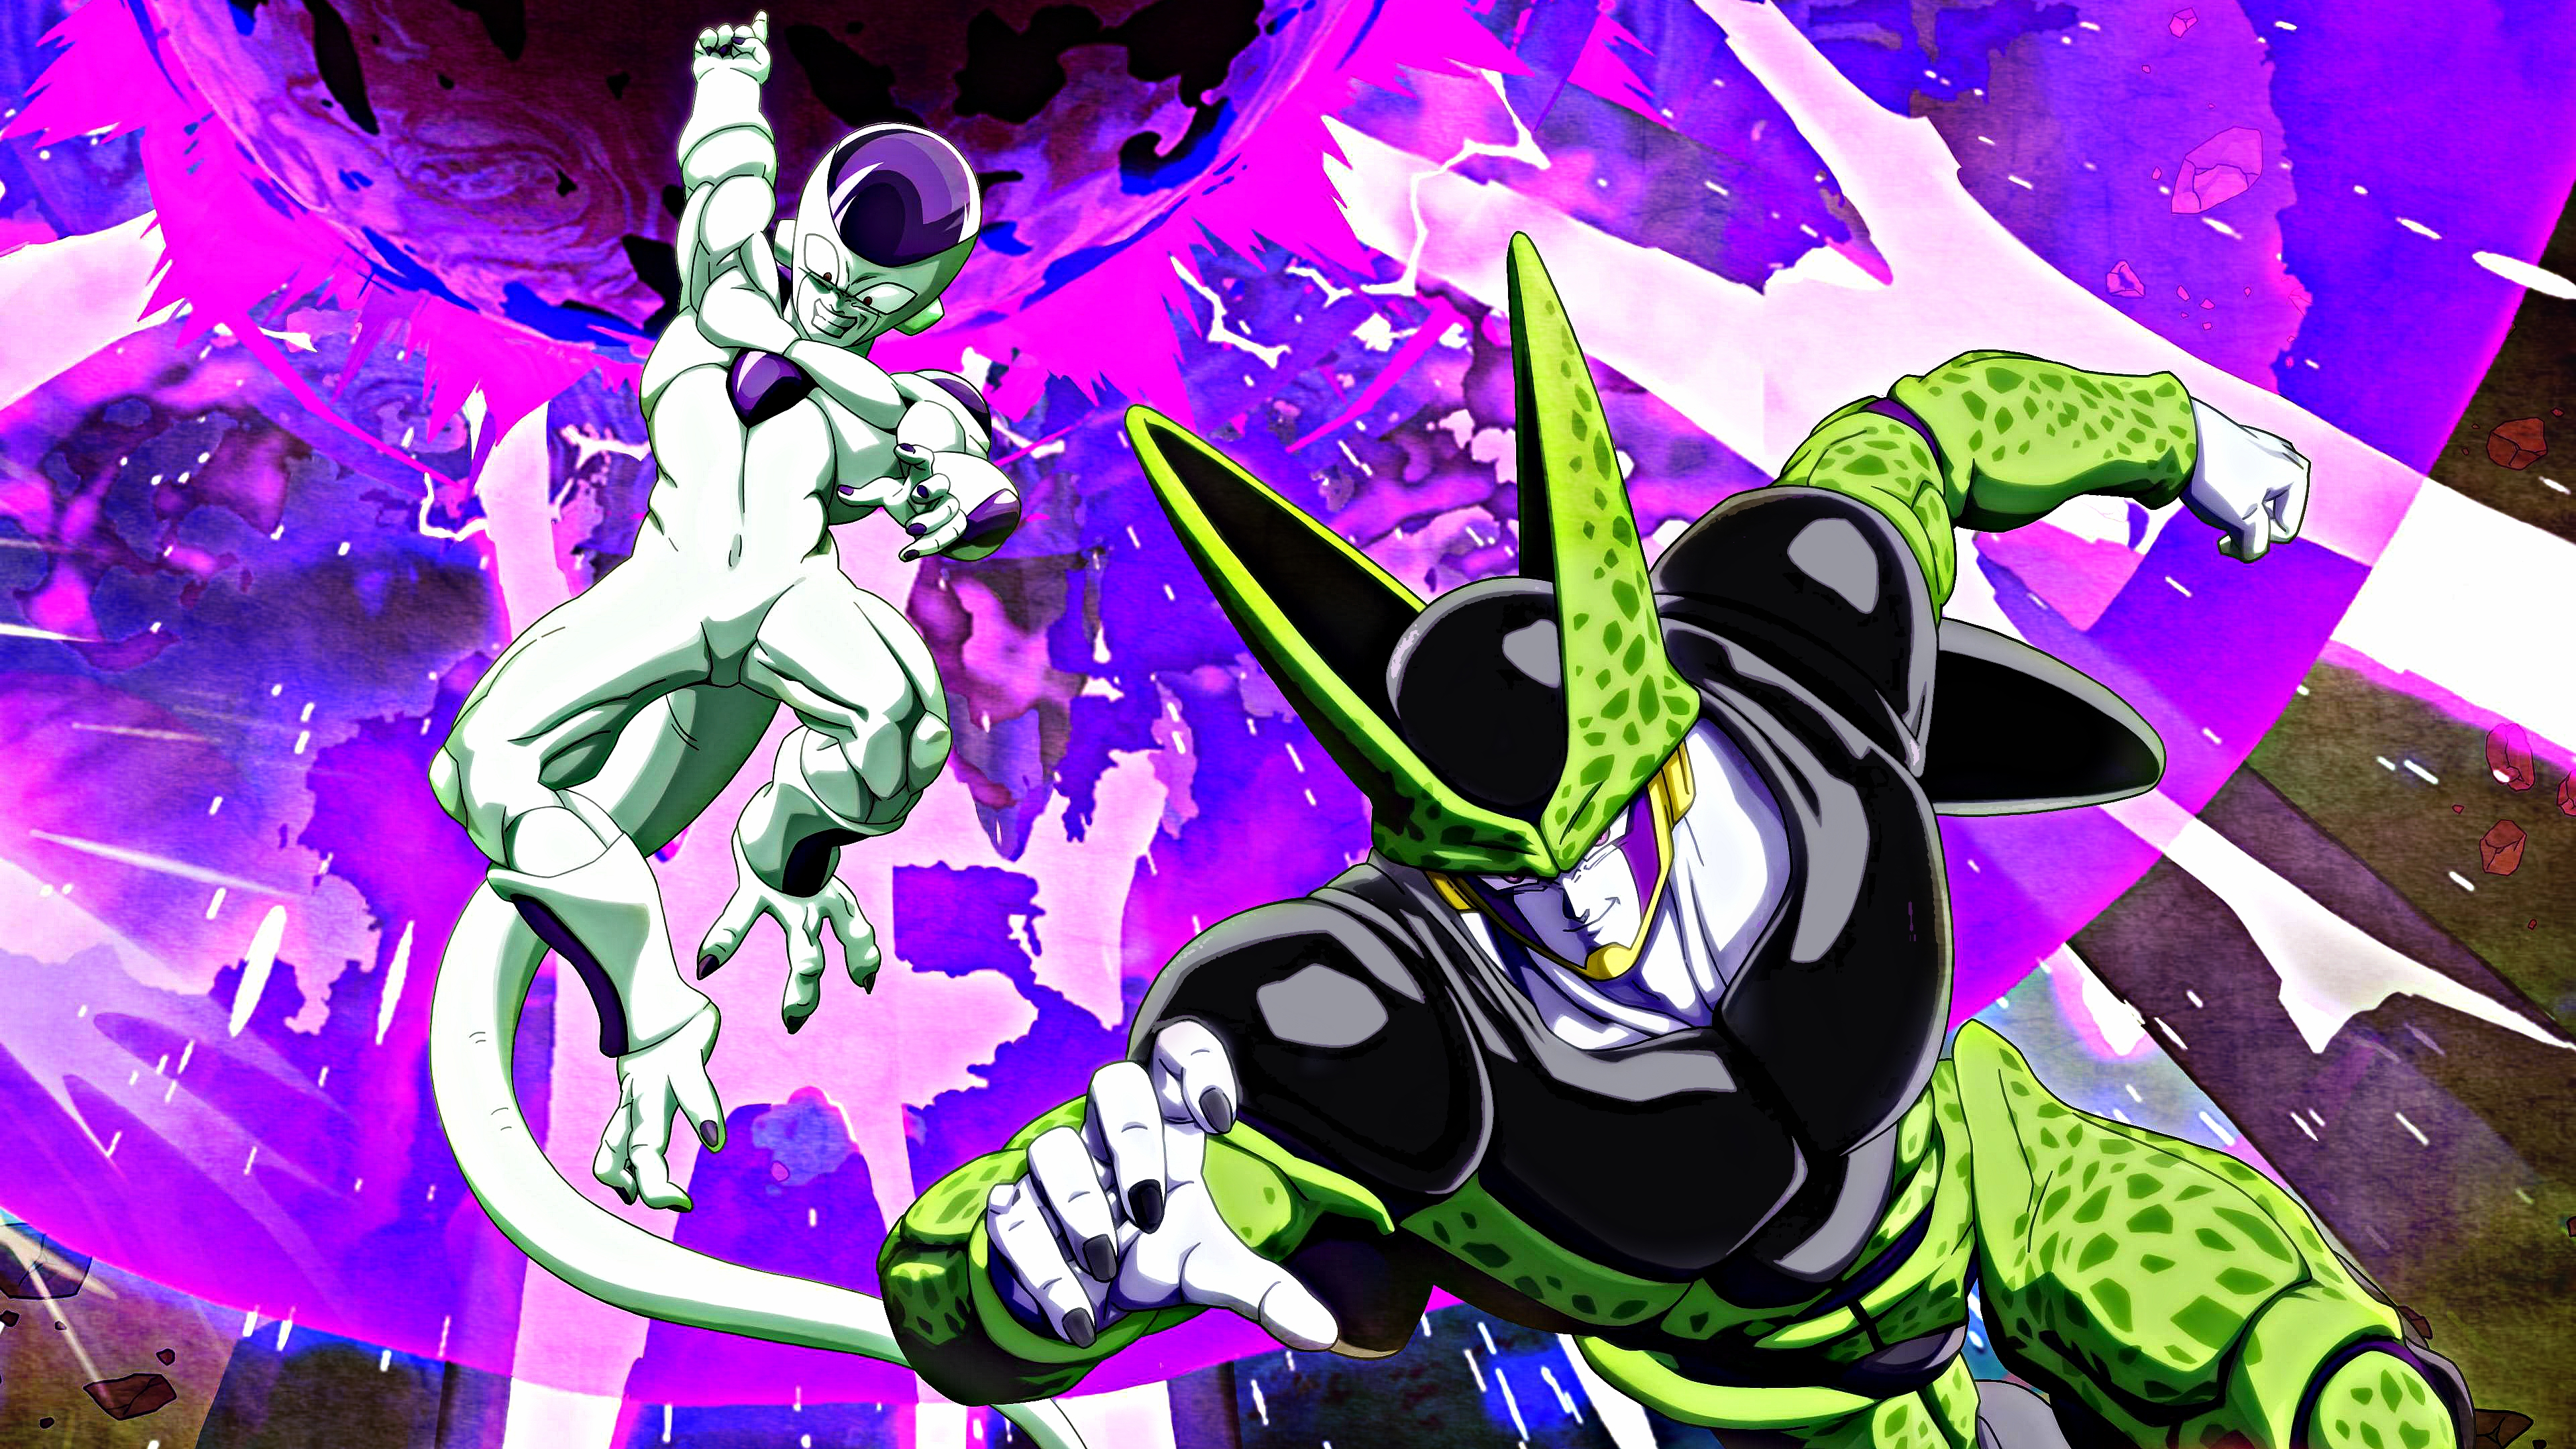 Frieza and Perfect Cell 4k Wallpaper dragonballfighterz 3840x2160